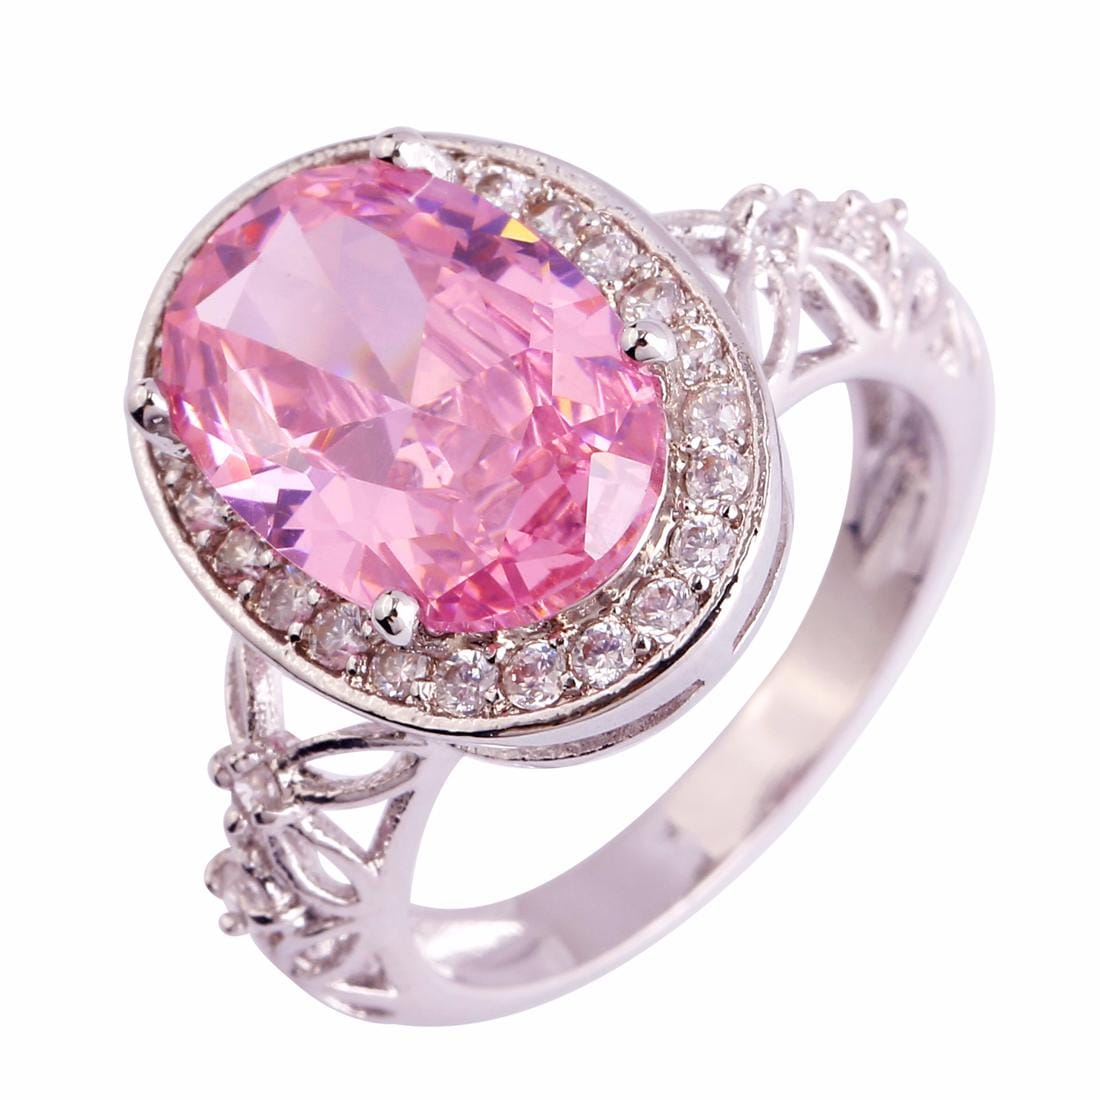 Ice_N_Fire_BB3OAMYZ_Silver_Plated_Oval_Pink_Topaz_Ring.jpg?v=1457718027